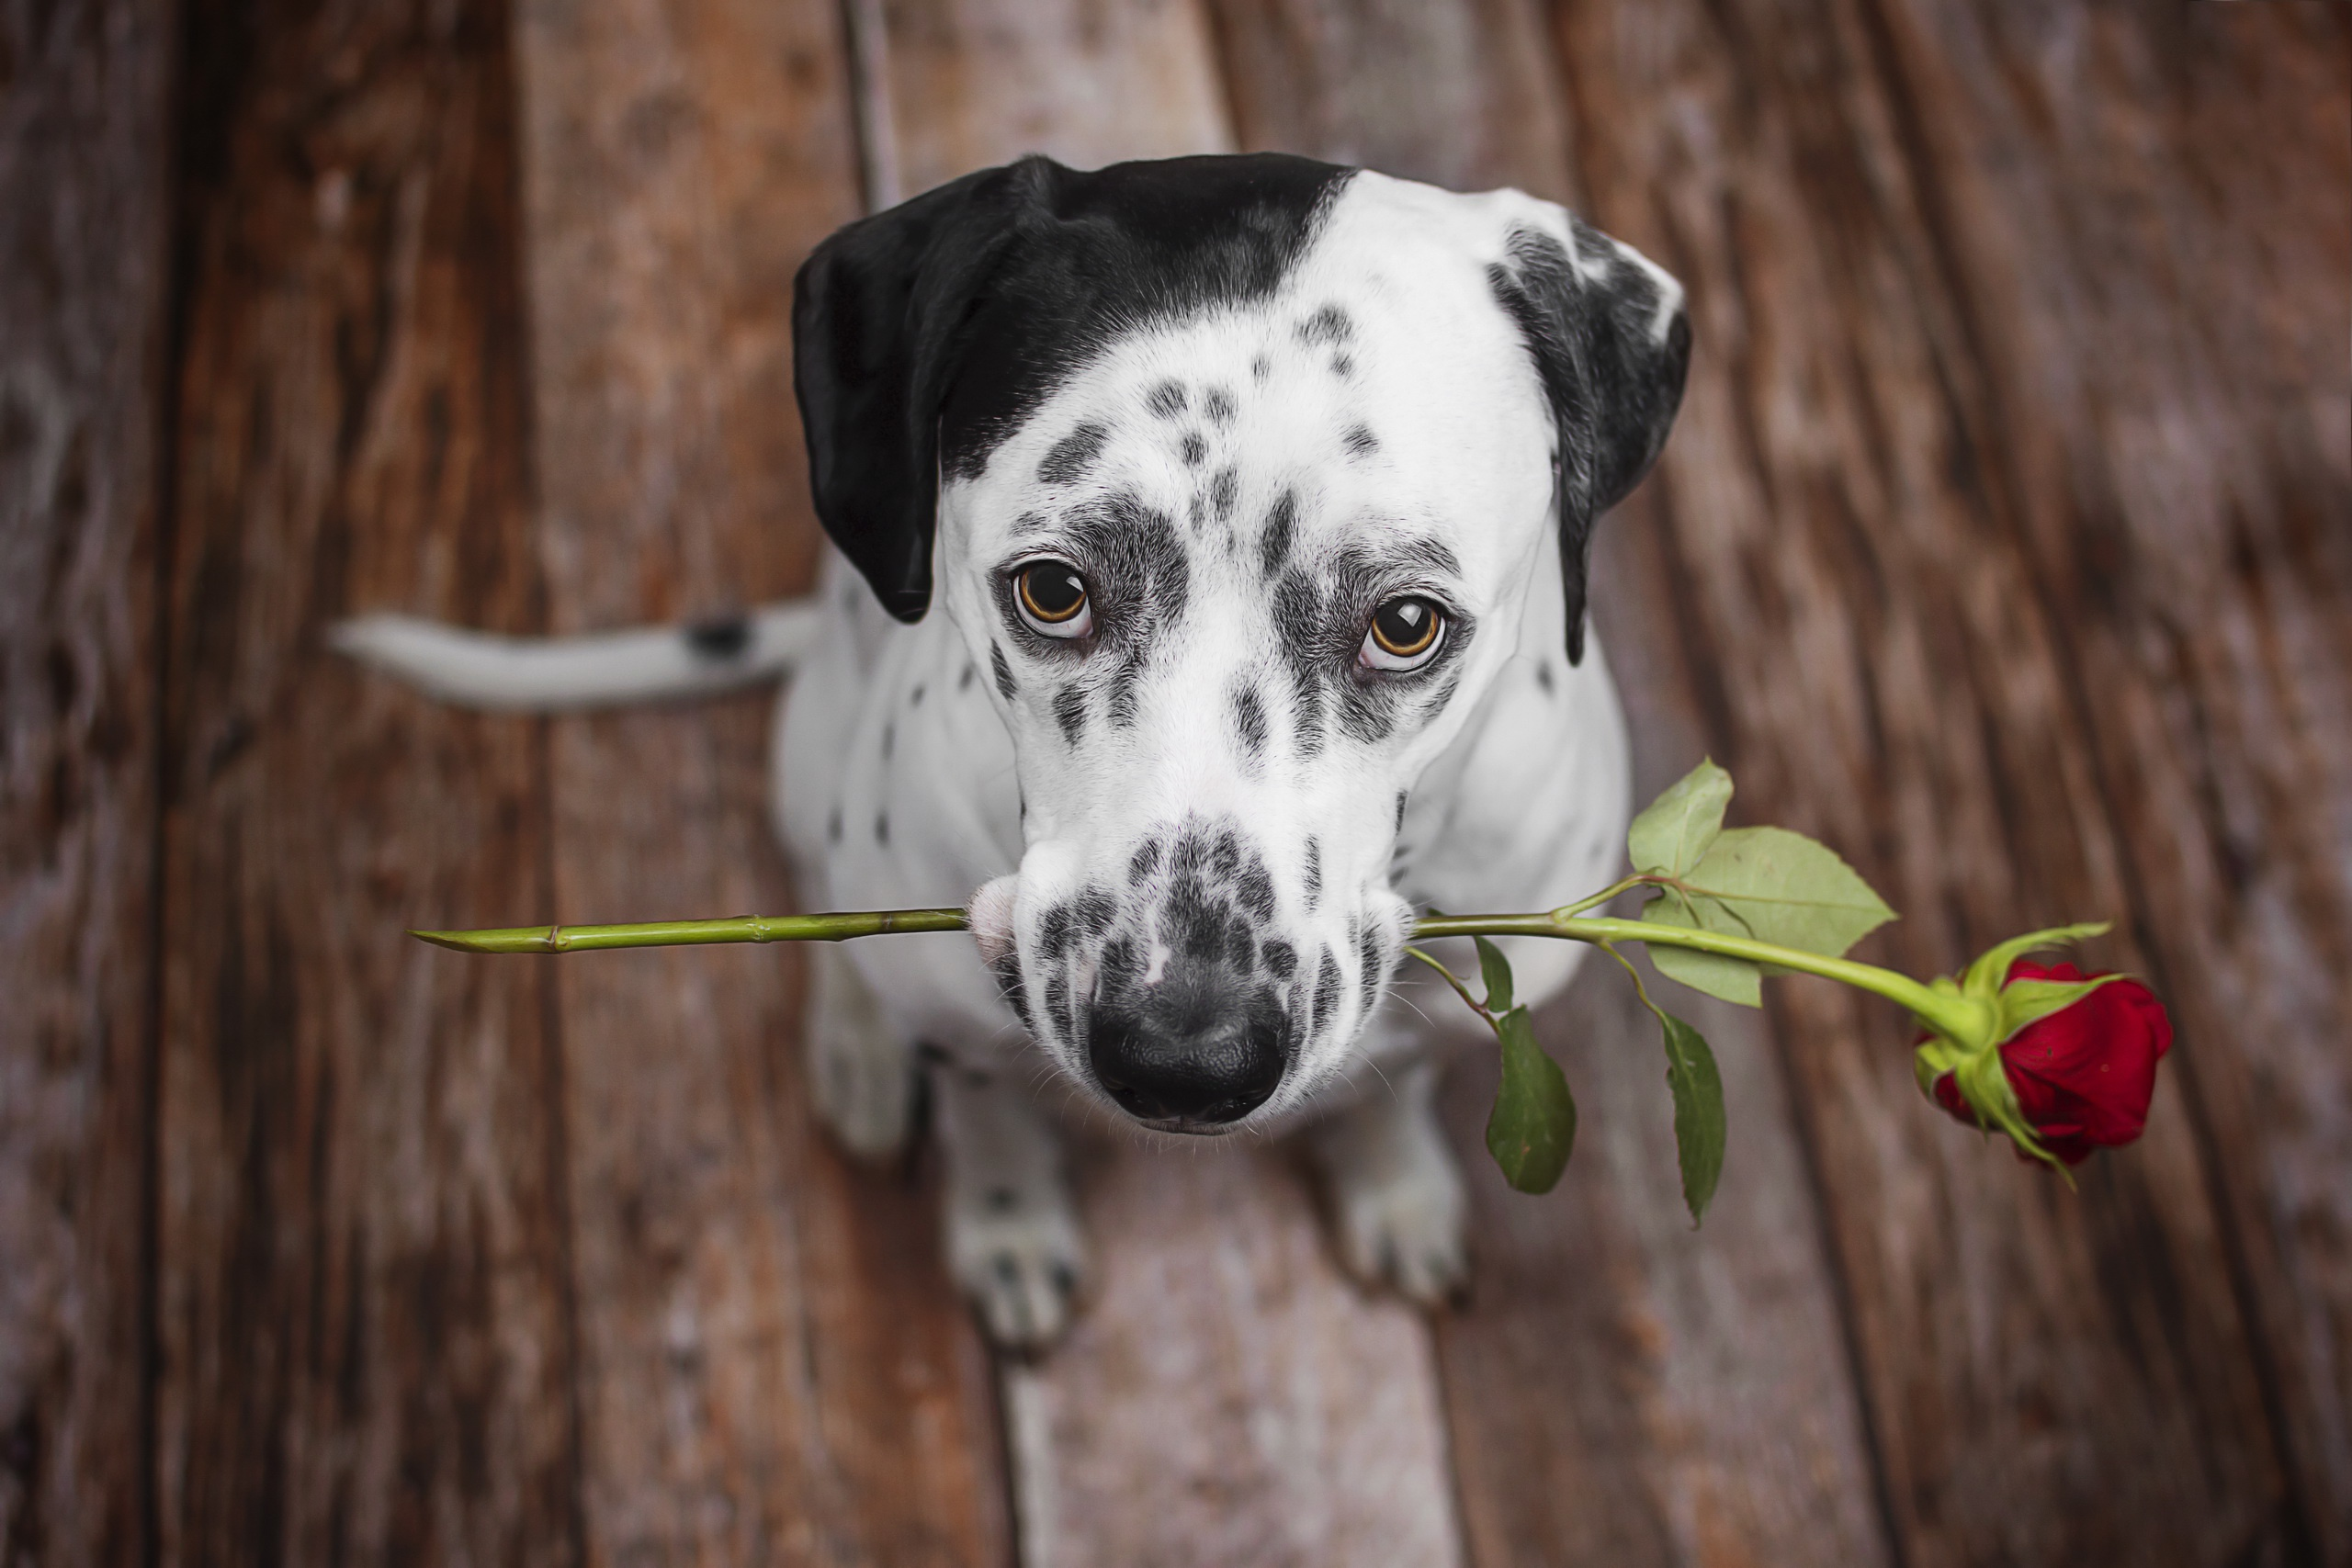 Indian Girls Wallpaper Download Dalmatian Dog Holding Red Flower In The Mouth Hd Animals